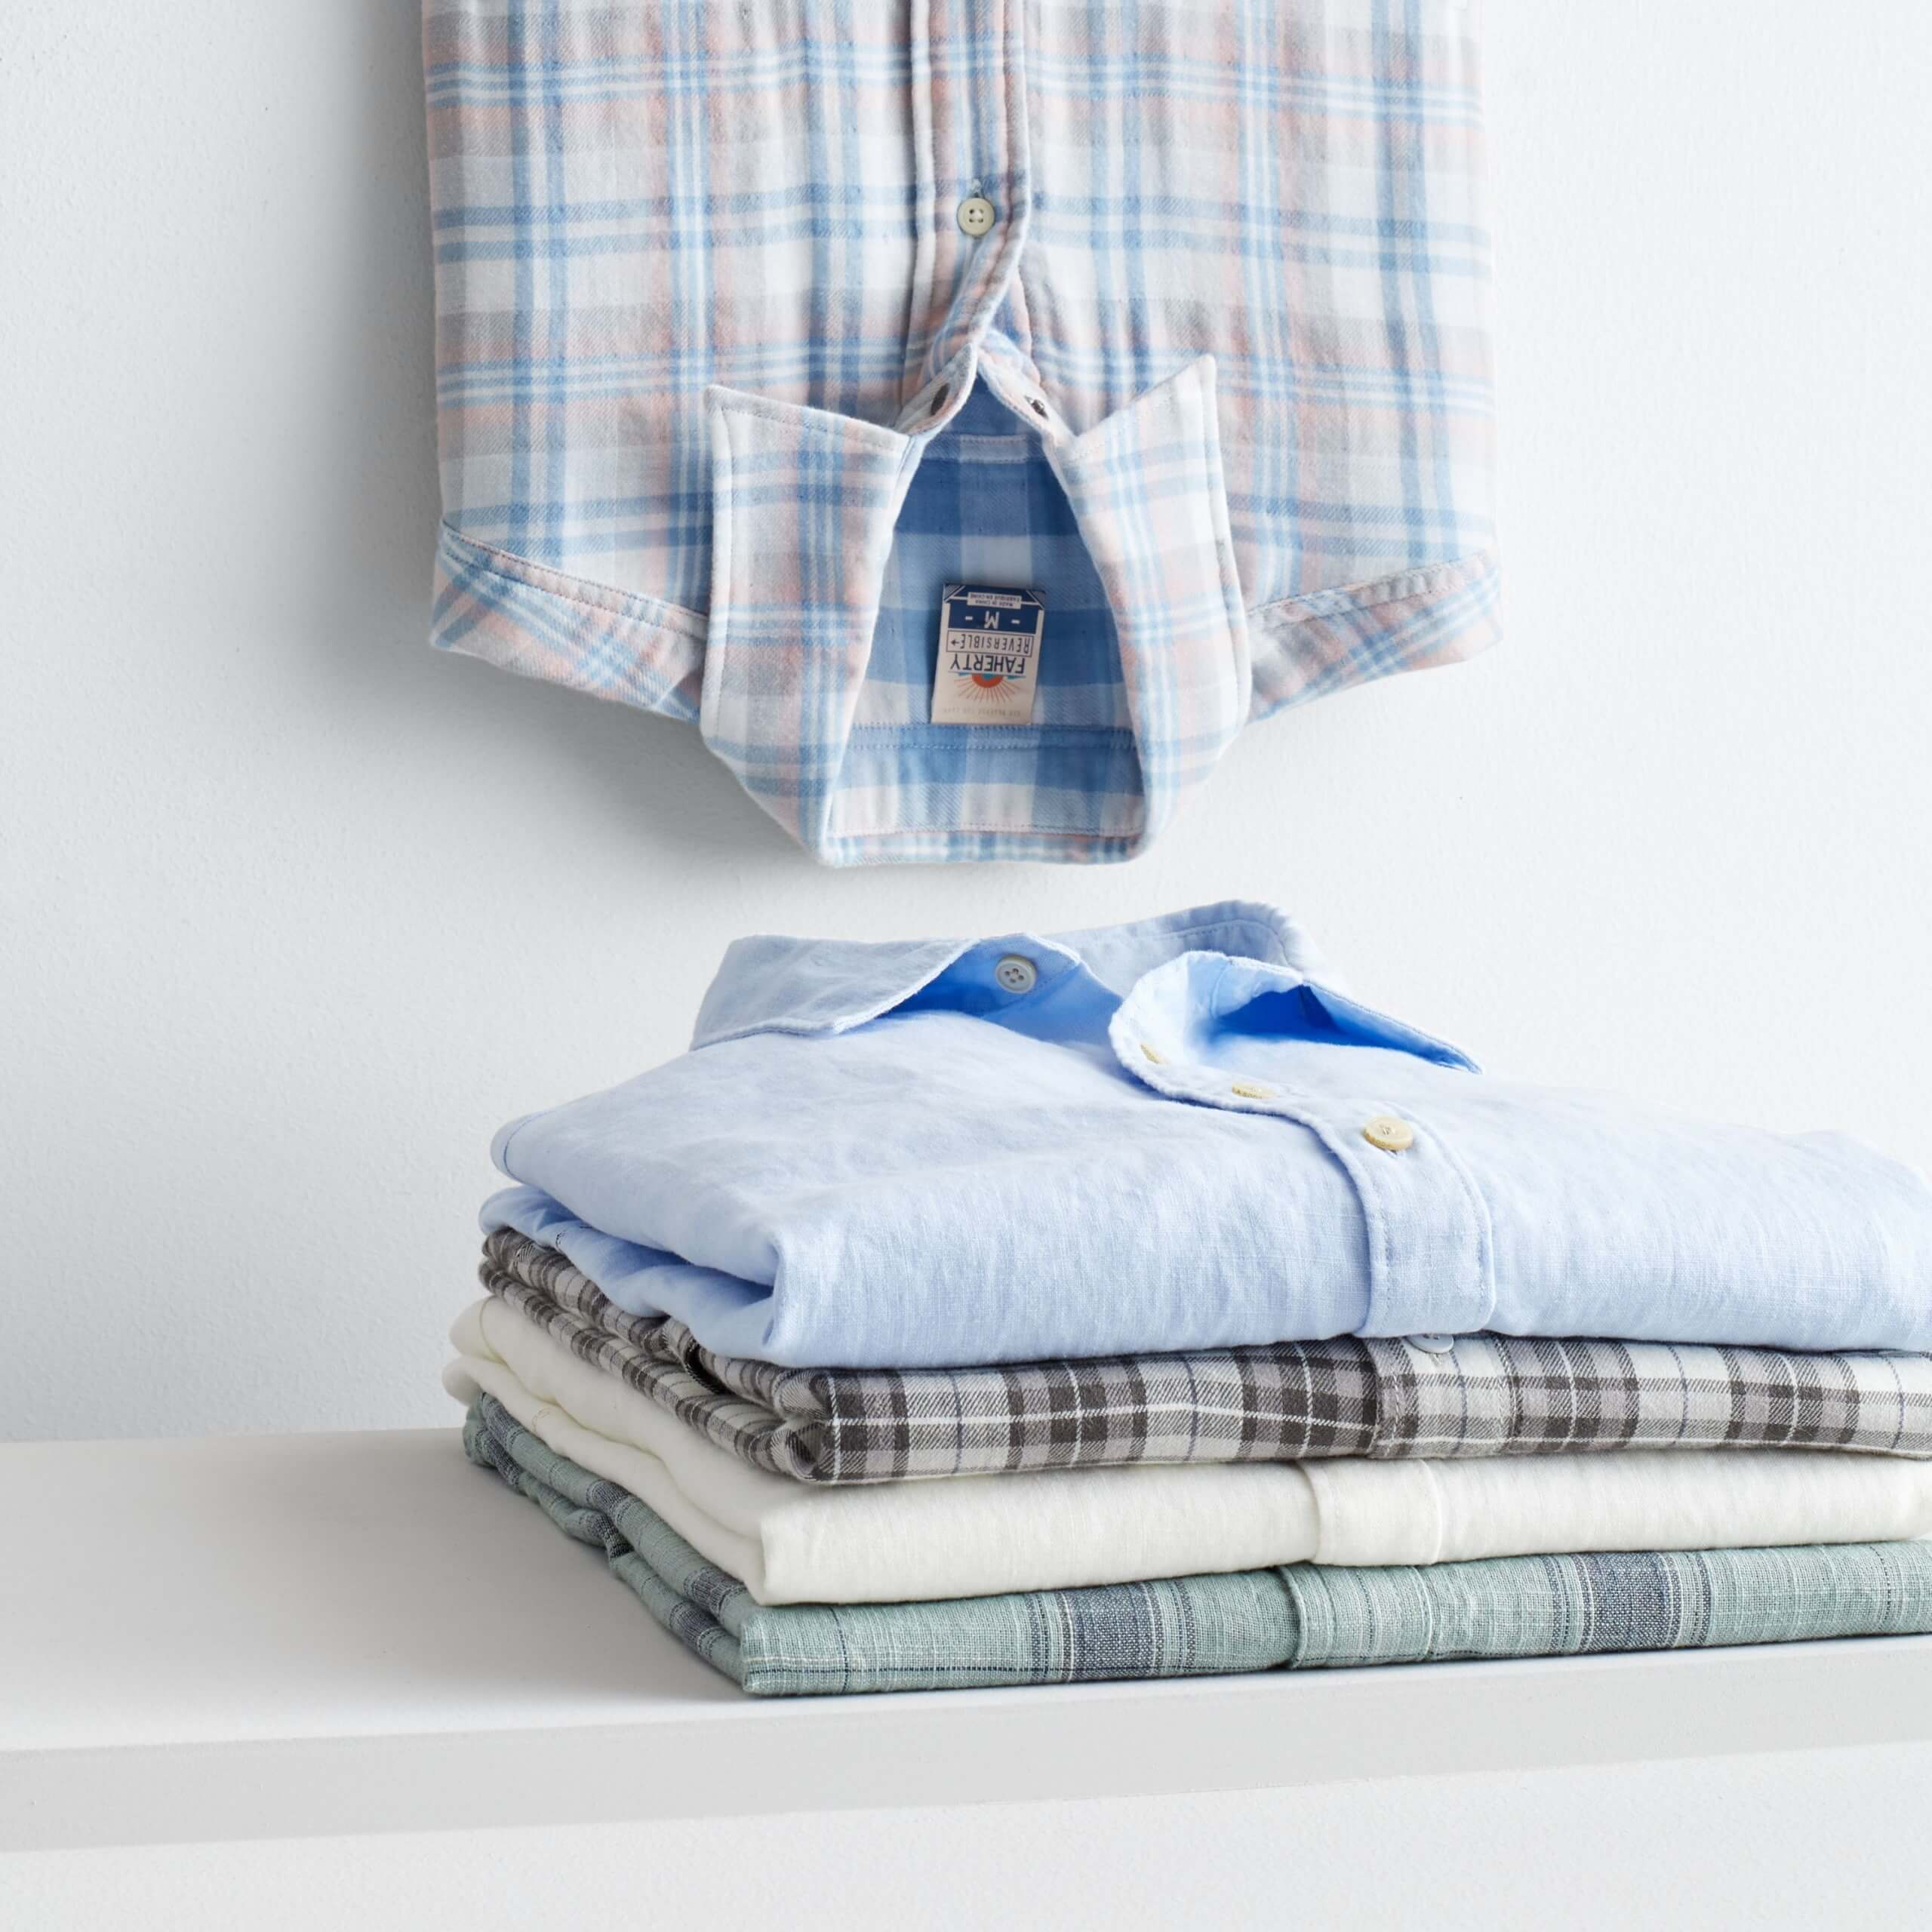 Stitch Fix Men's folded stack of button-down shirts in various shades of blue, cream and grey and one blue plaid shirt hanging upside down.